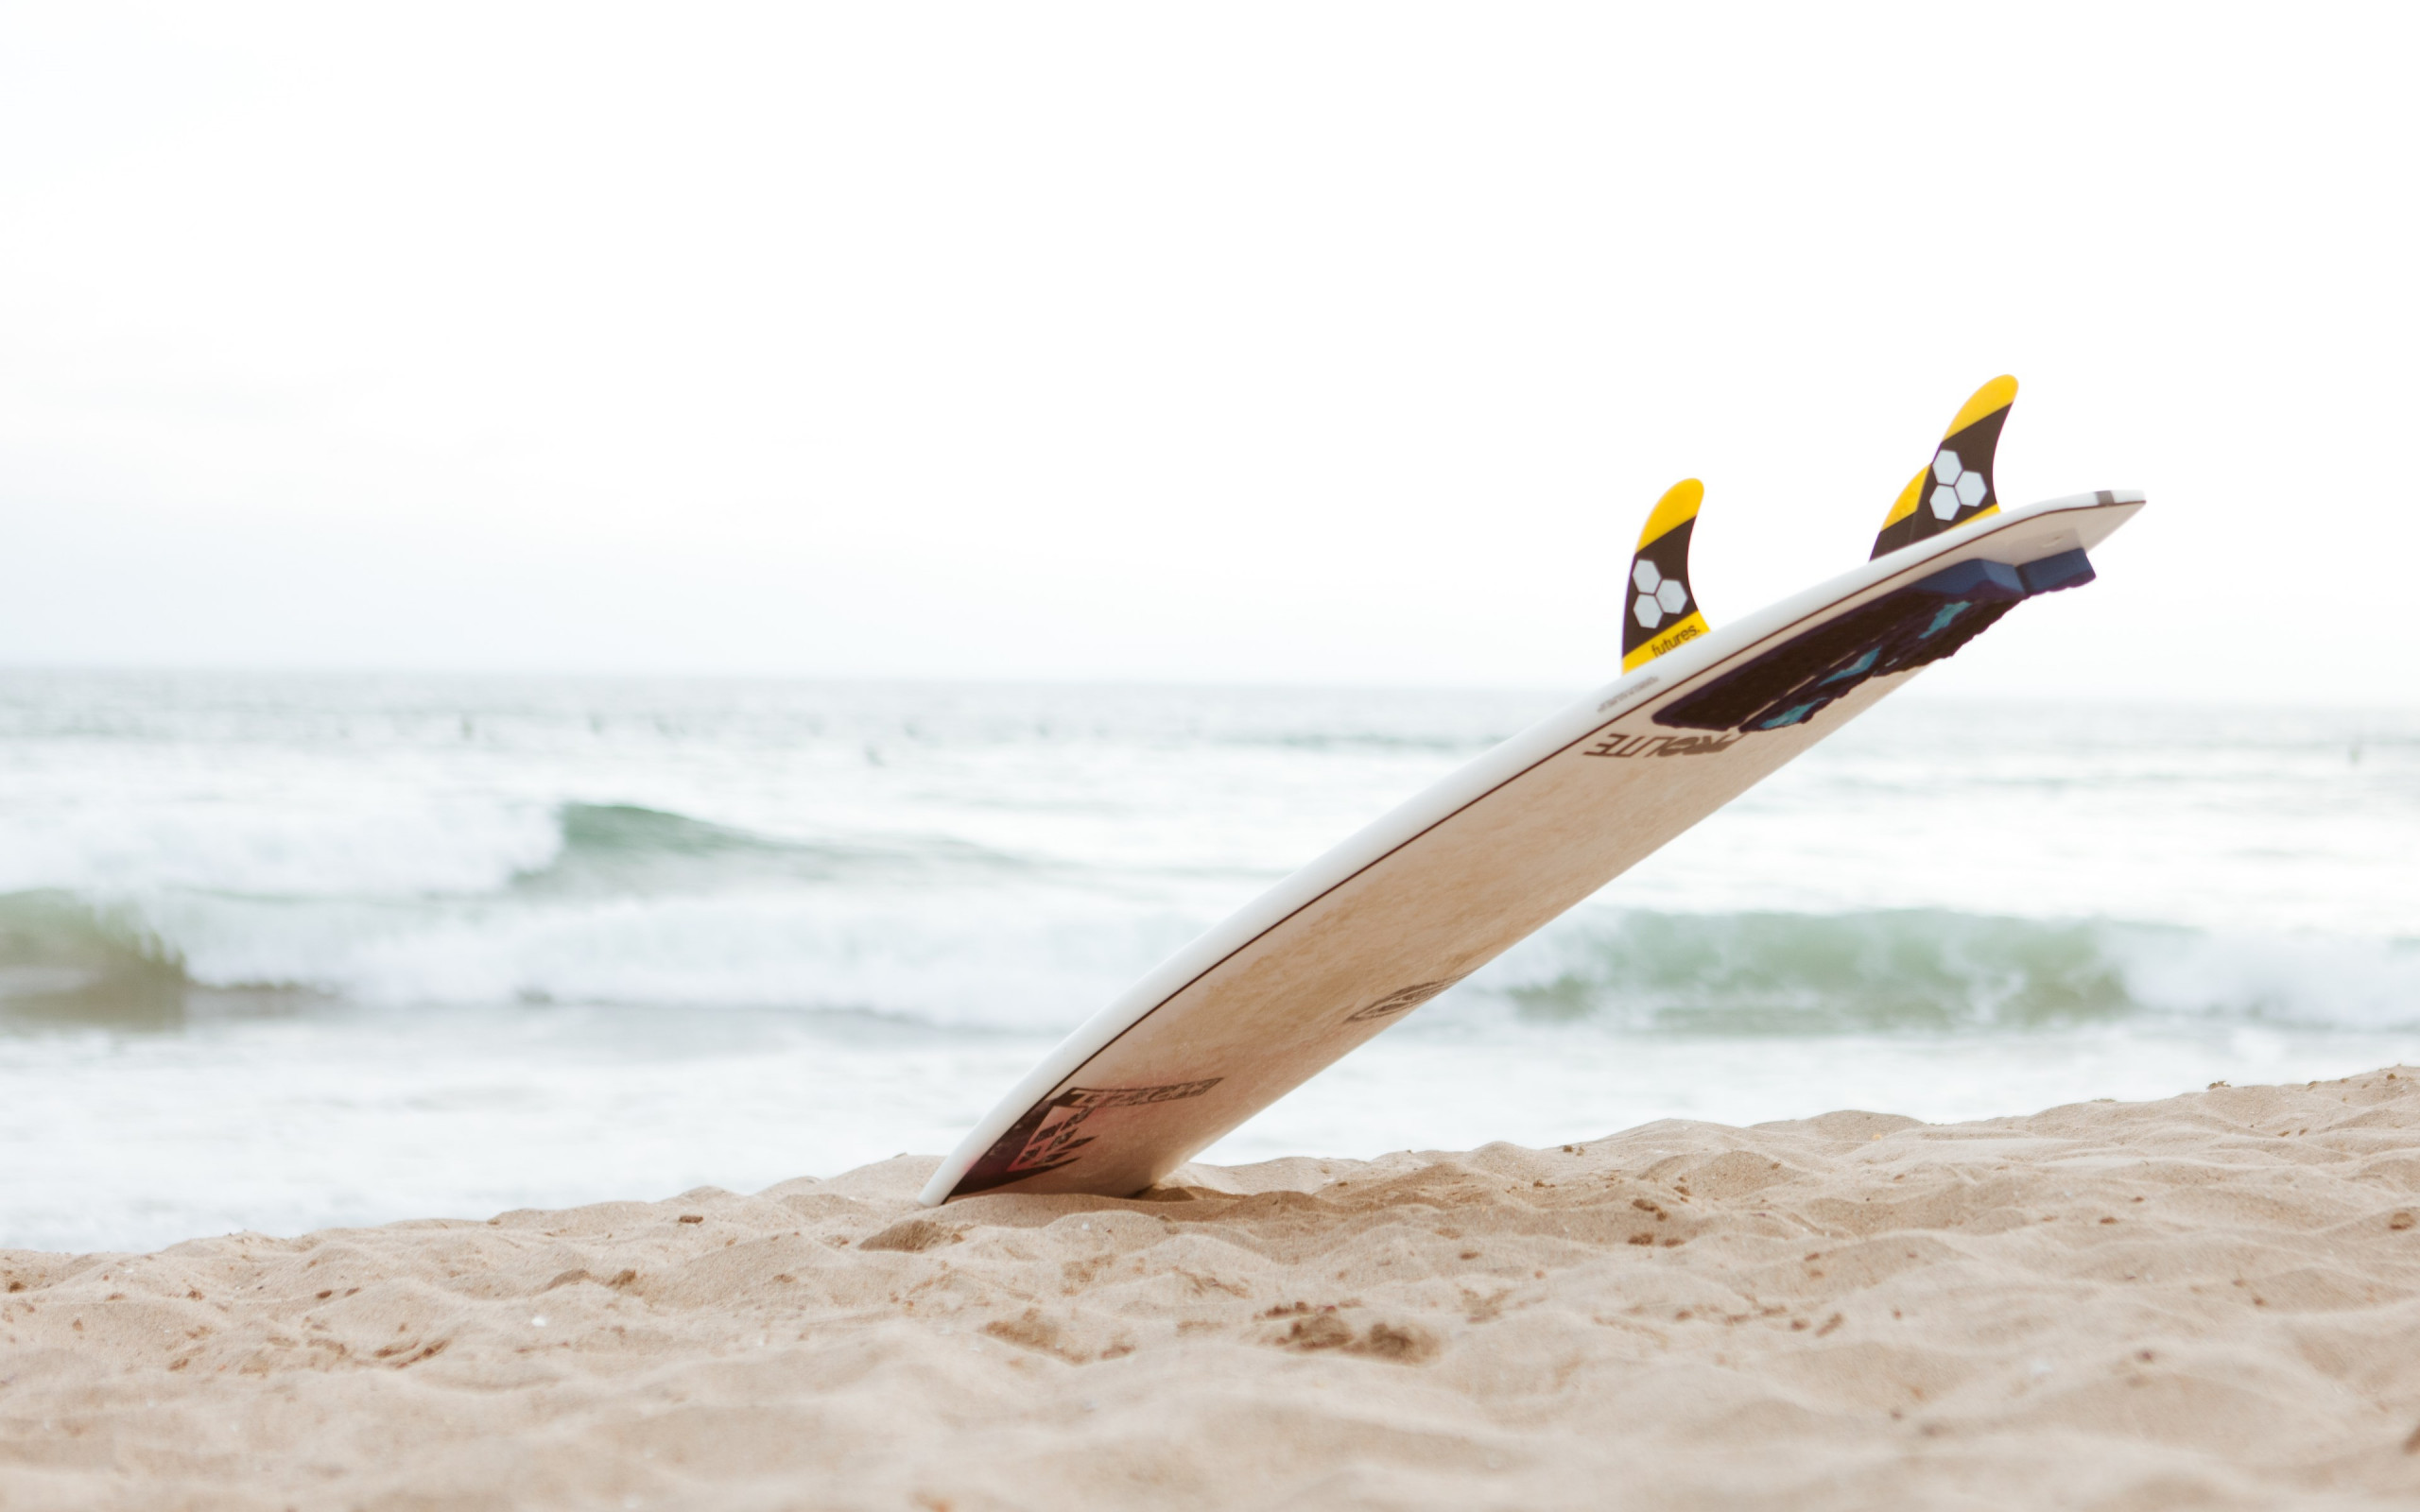 Surf board on the beach | 2560x1600 wallpaper